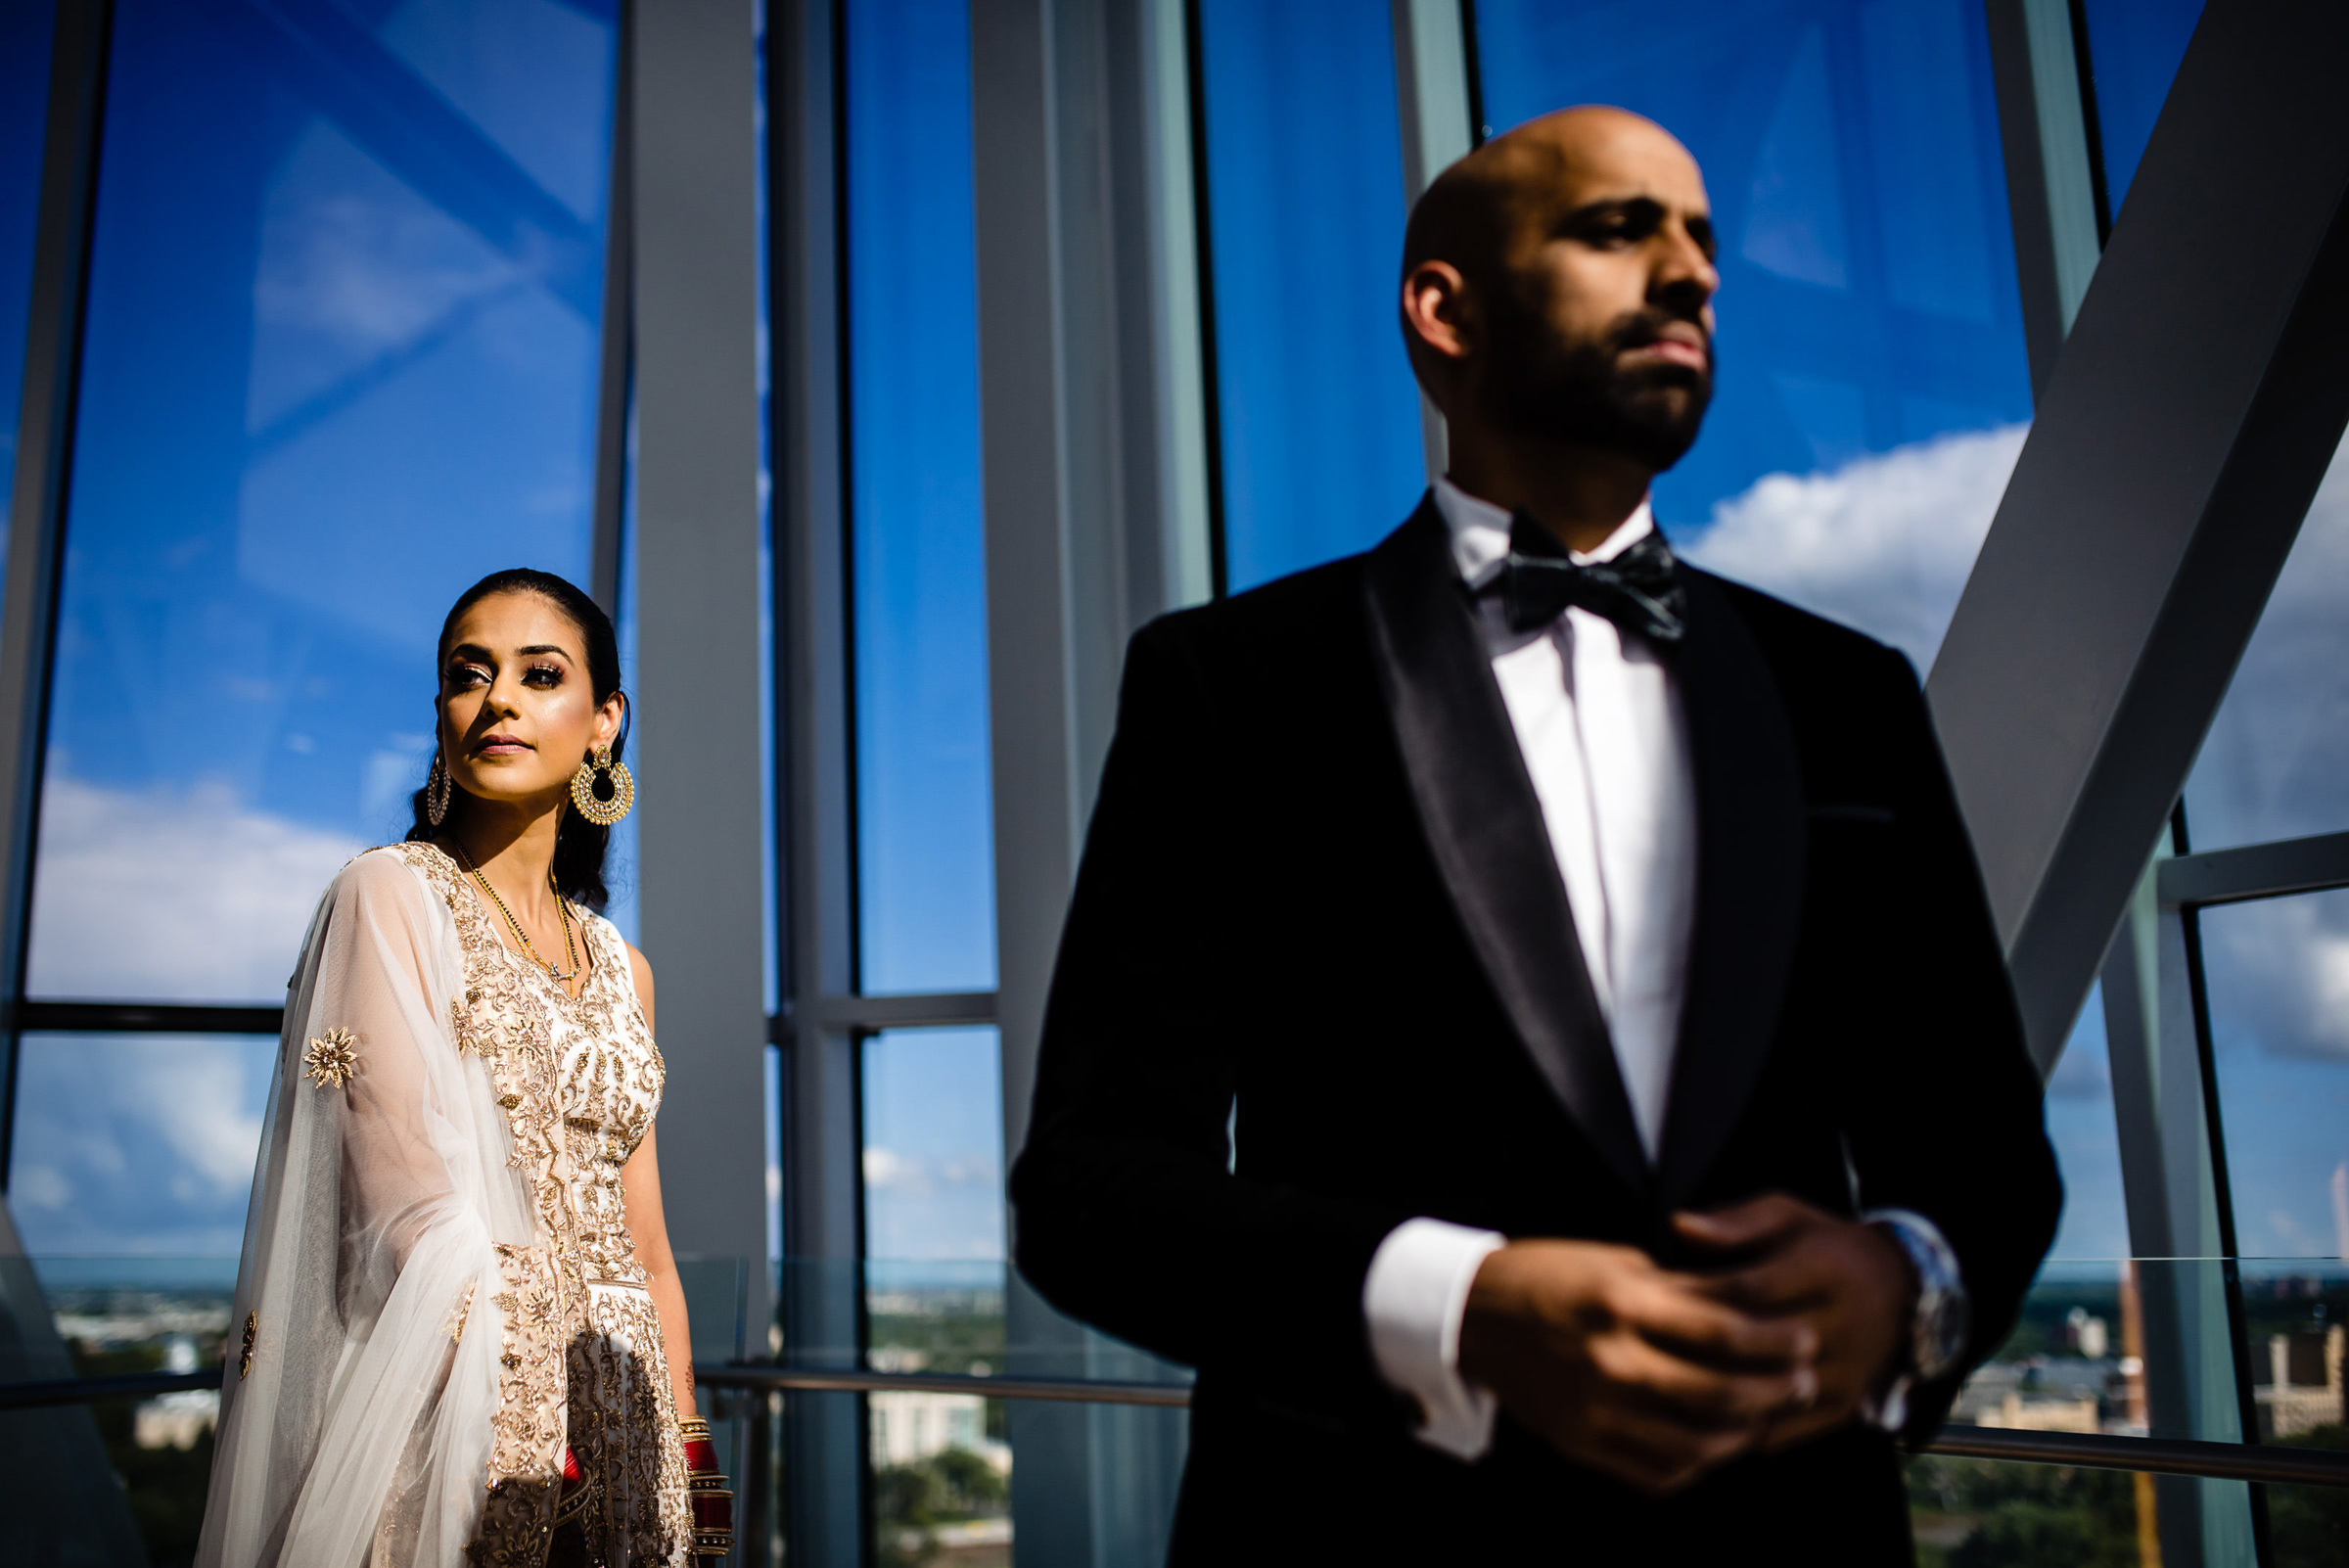 Glamorous bride and groom against interior glass architecture - photo by Moore Photography